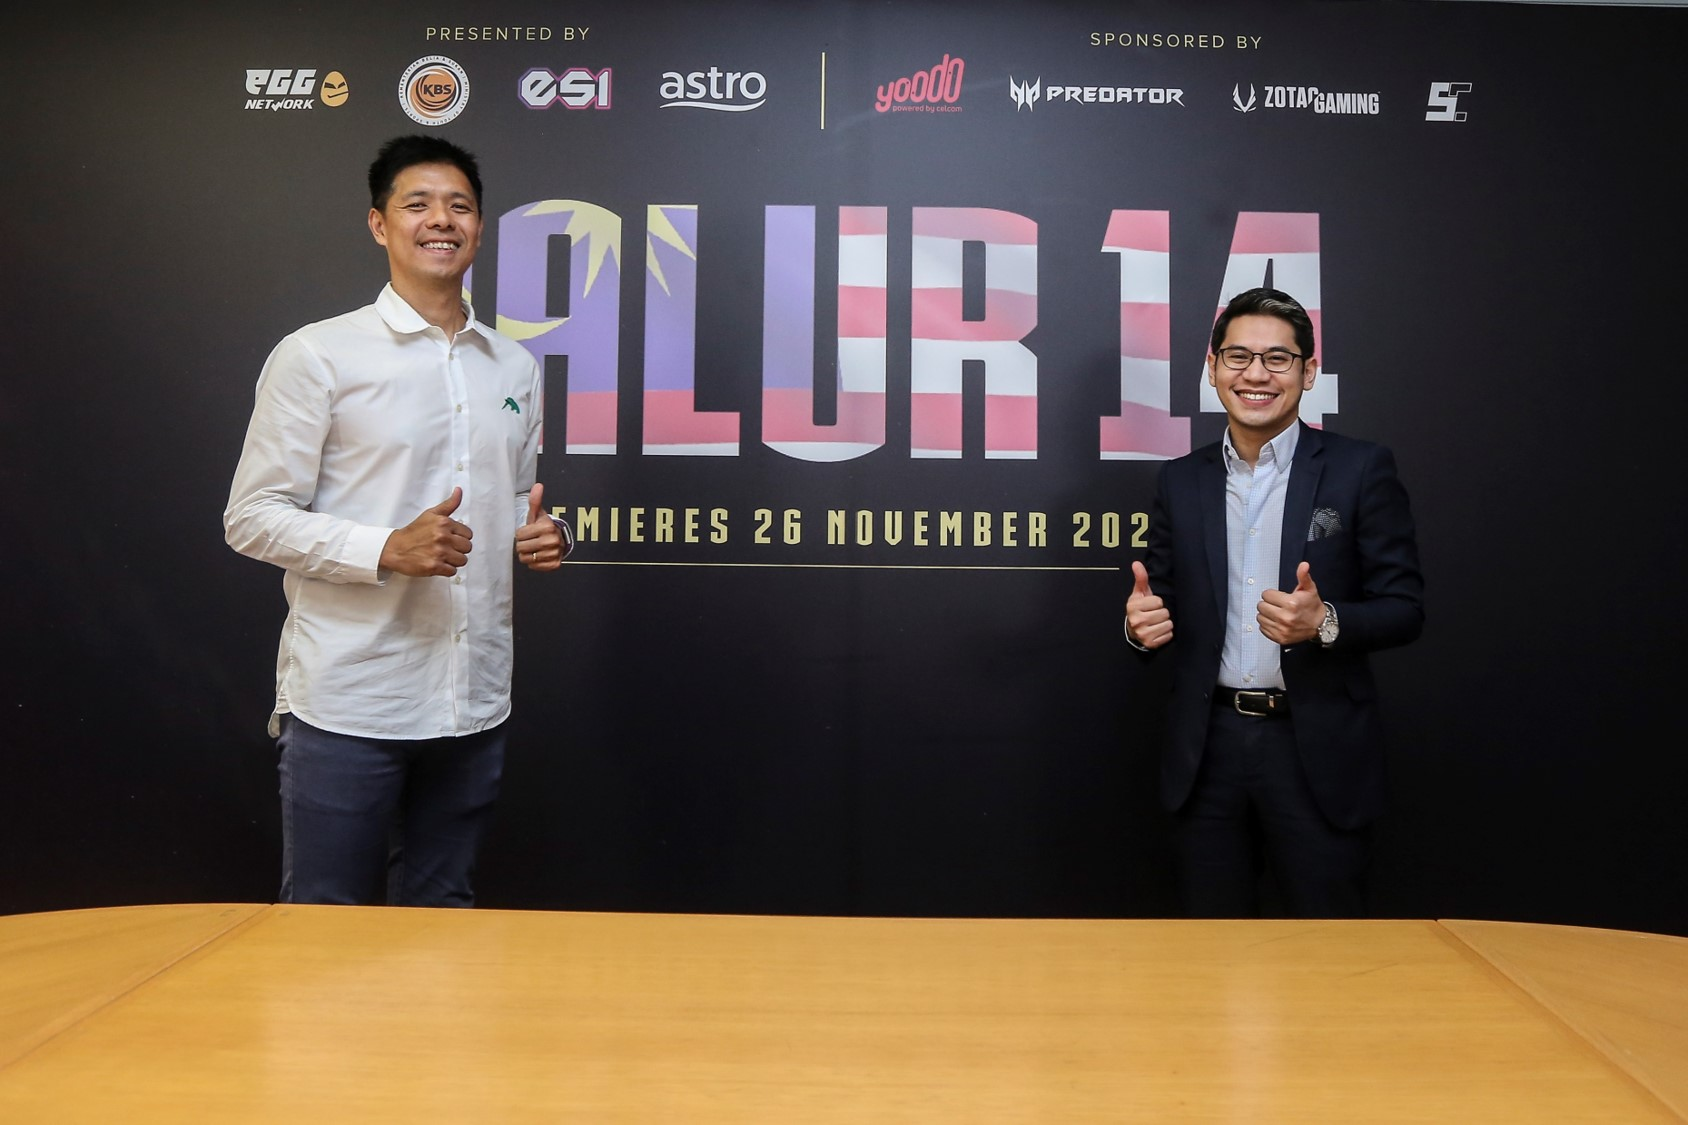 Jalur 14 - Malaysia's First Esports Docuseries